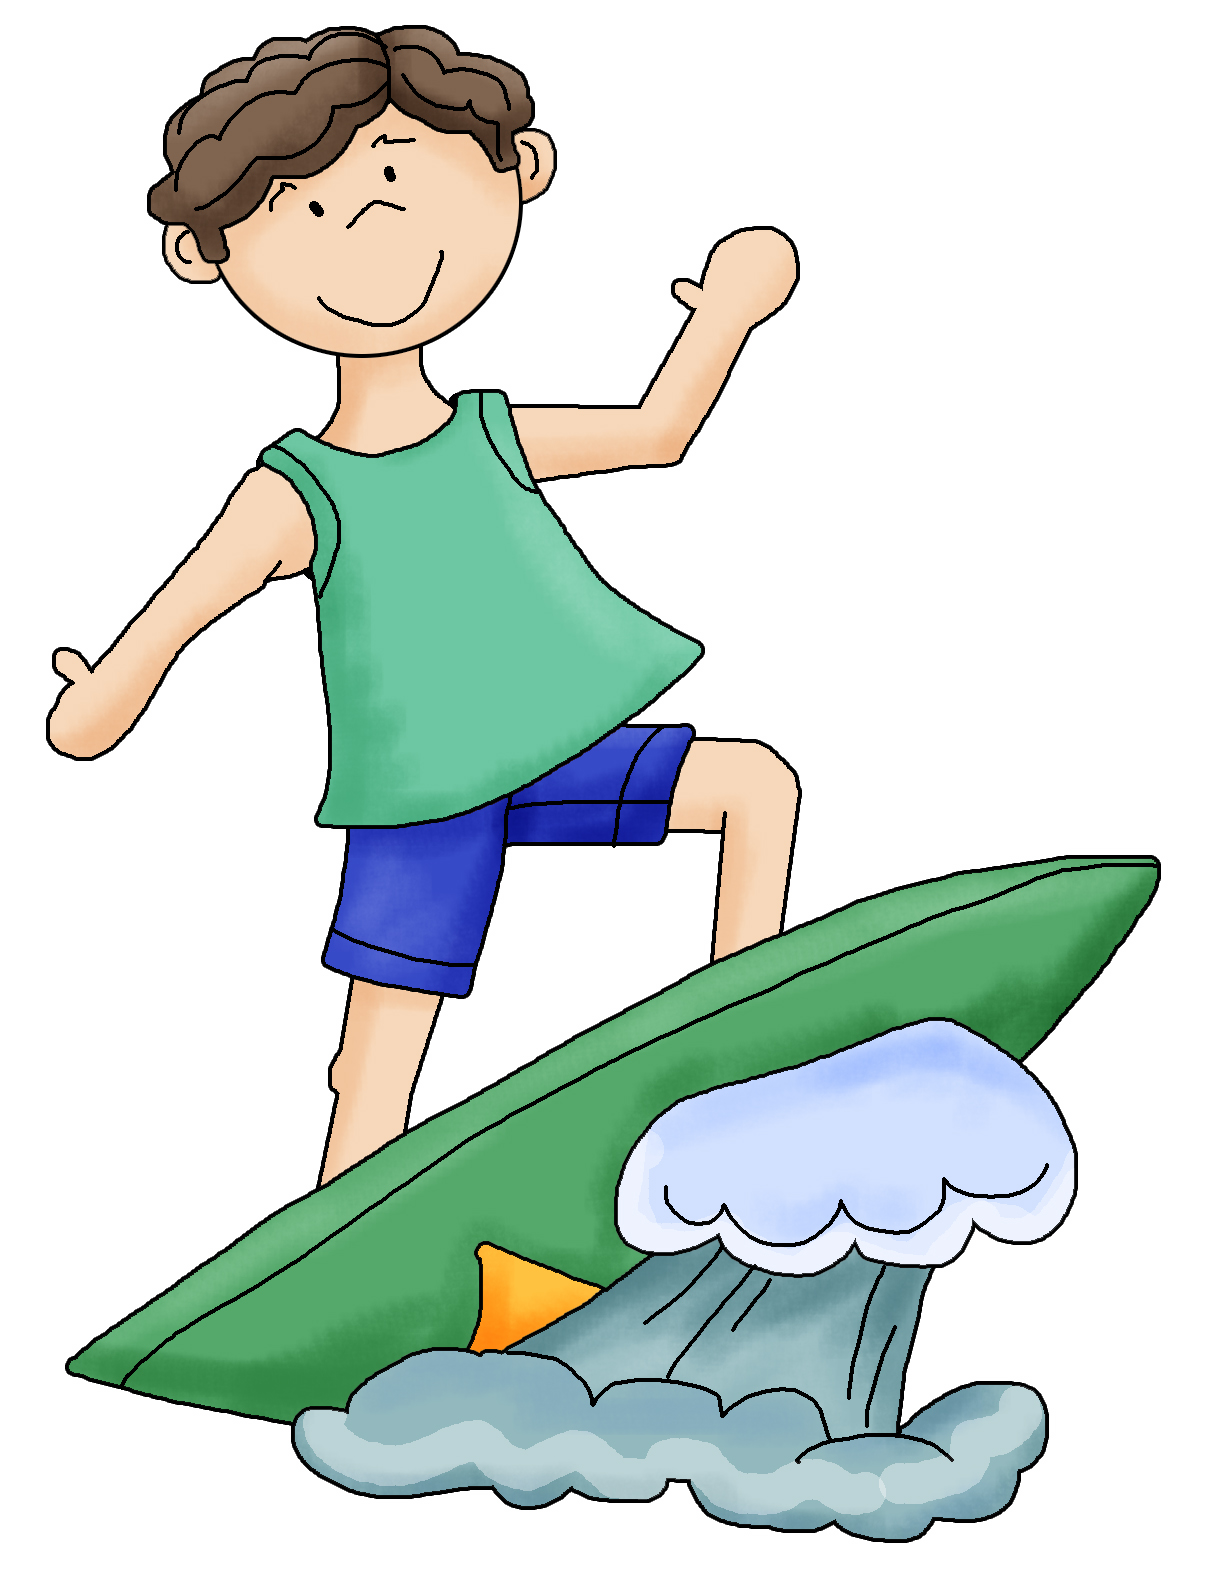 Boy surfing clipart png black and white stock Free Surfer Cliparts, Download Free Clip Art, Free Clip Art on ... png black and white stock